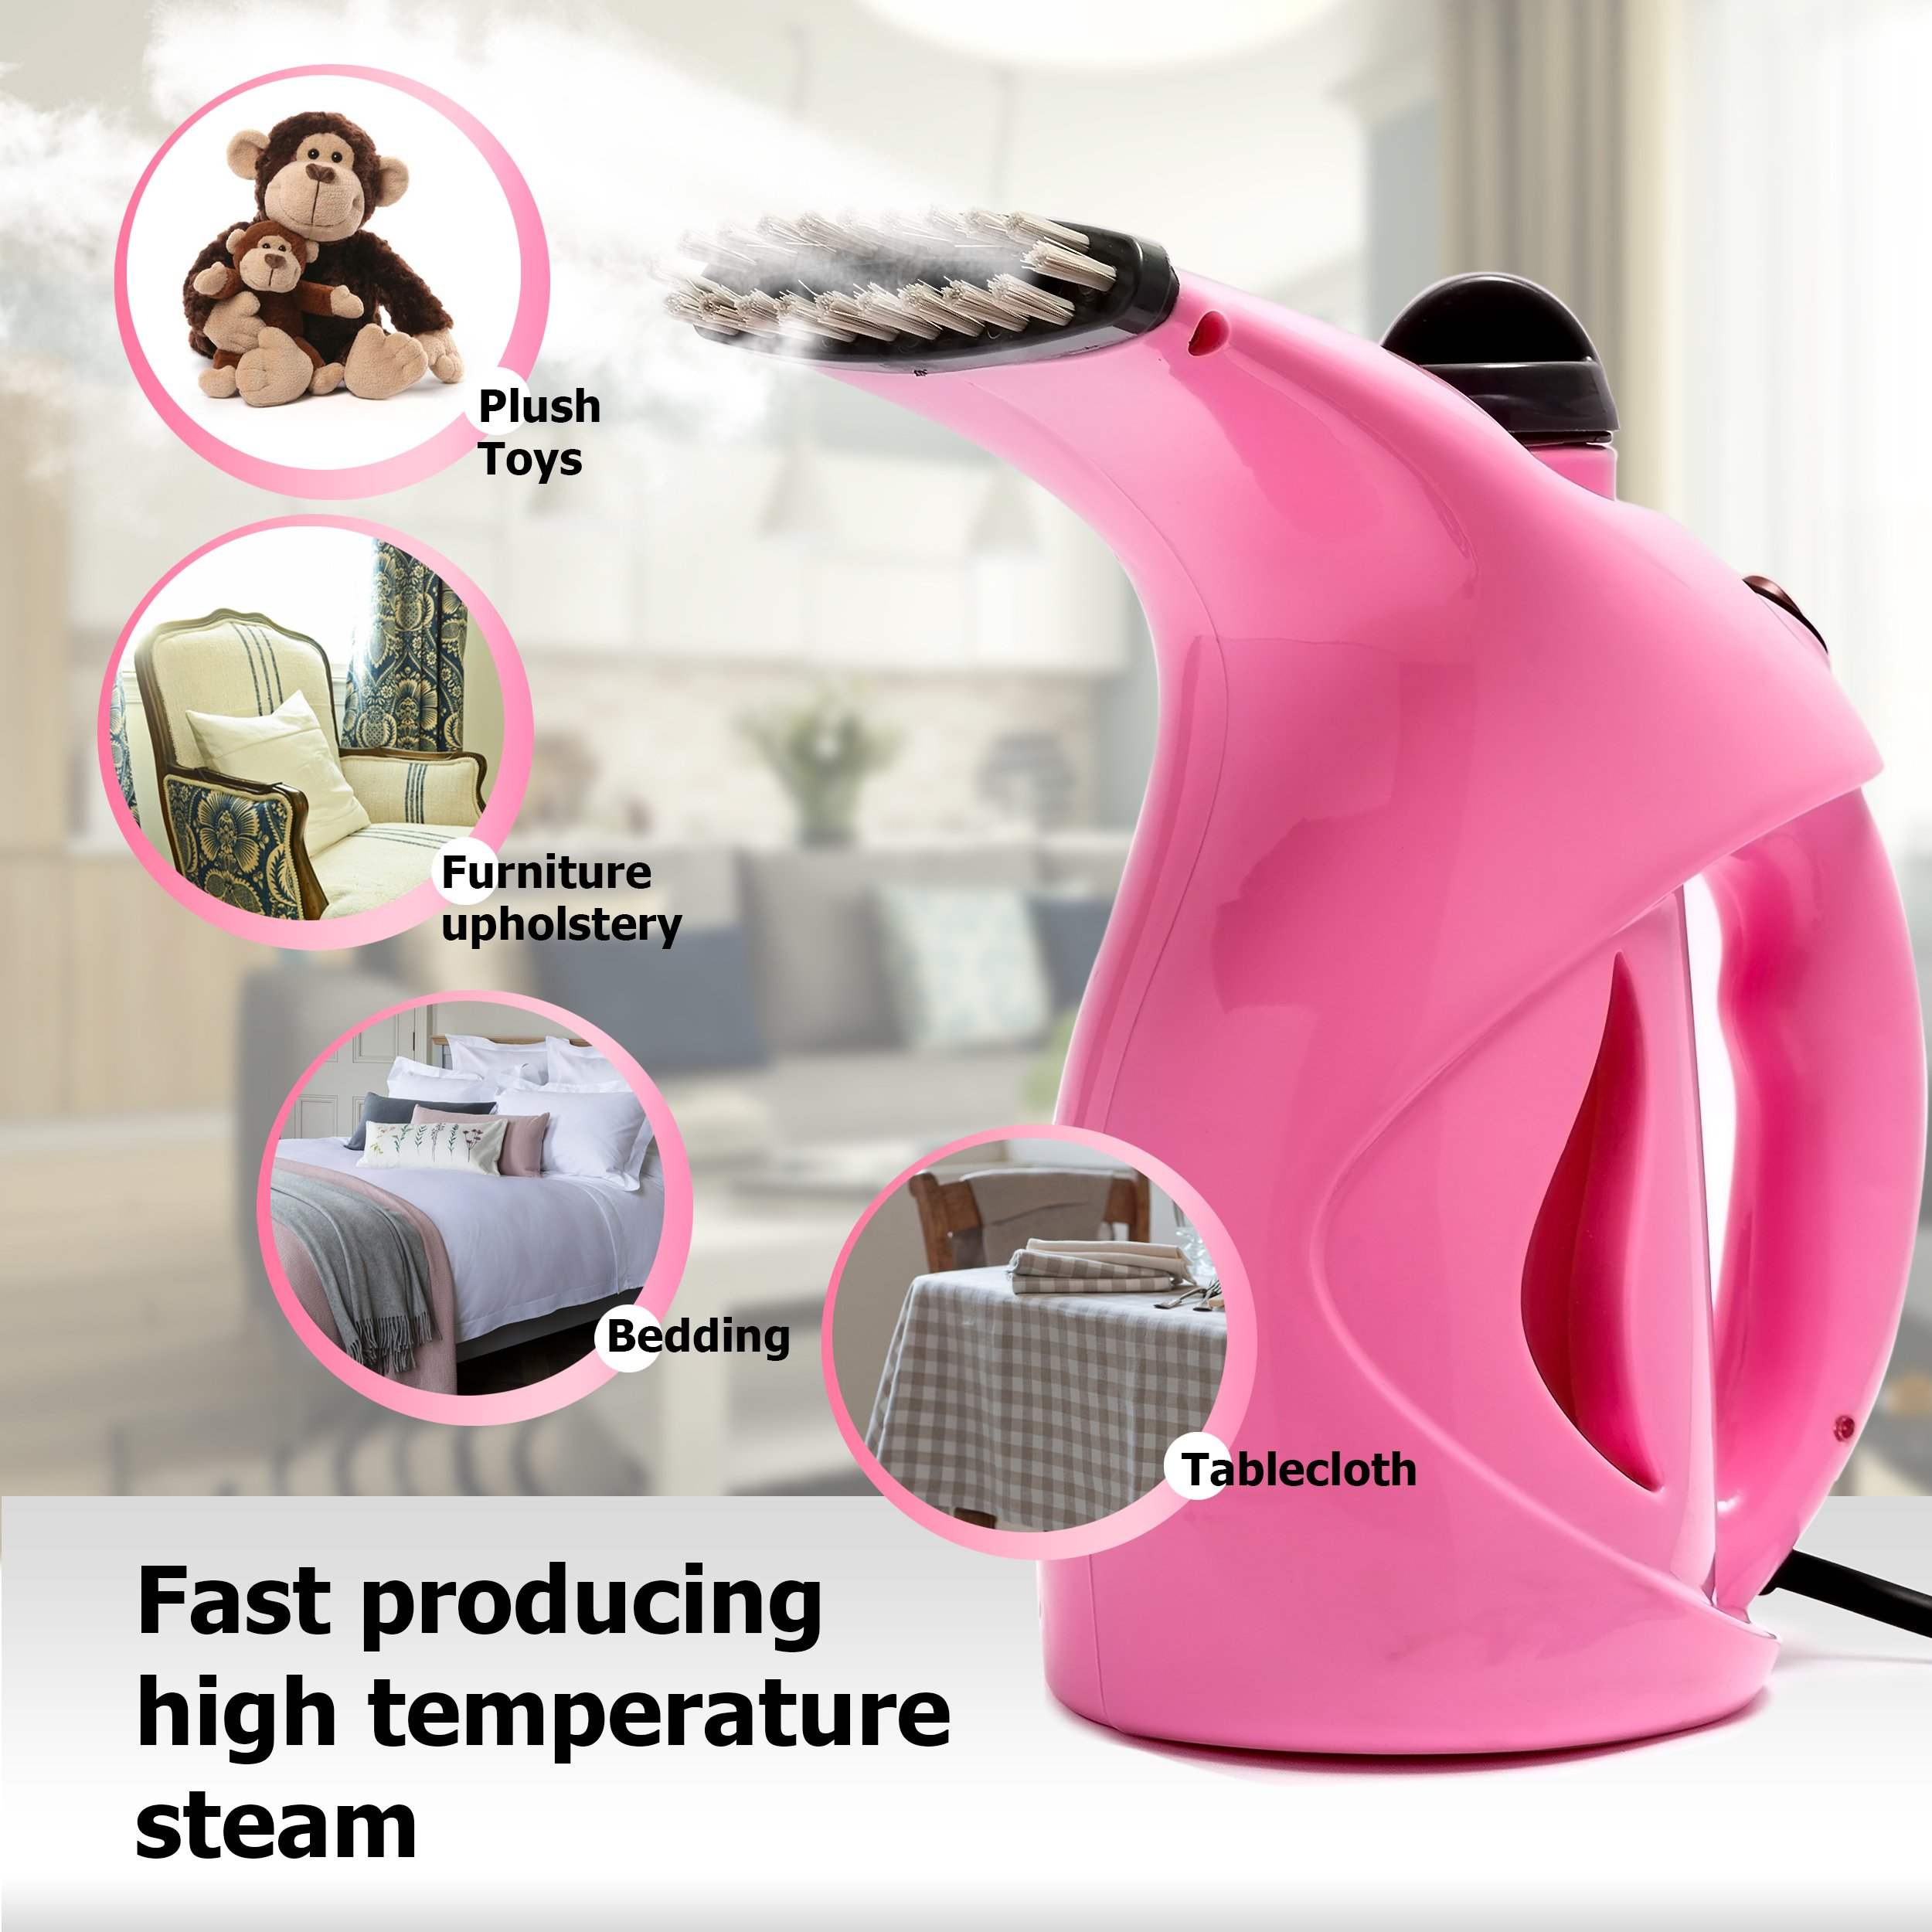 Business100 Portable Steamer, 200ML Portable Garment Steamer, Steamer for Clothes, Heat-up Premium Fabric Steam Cleaner, Safe, Lightweight & Perfect Clothing Steamer for Travel Home by Business100 (Image #7)